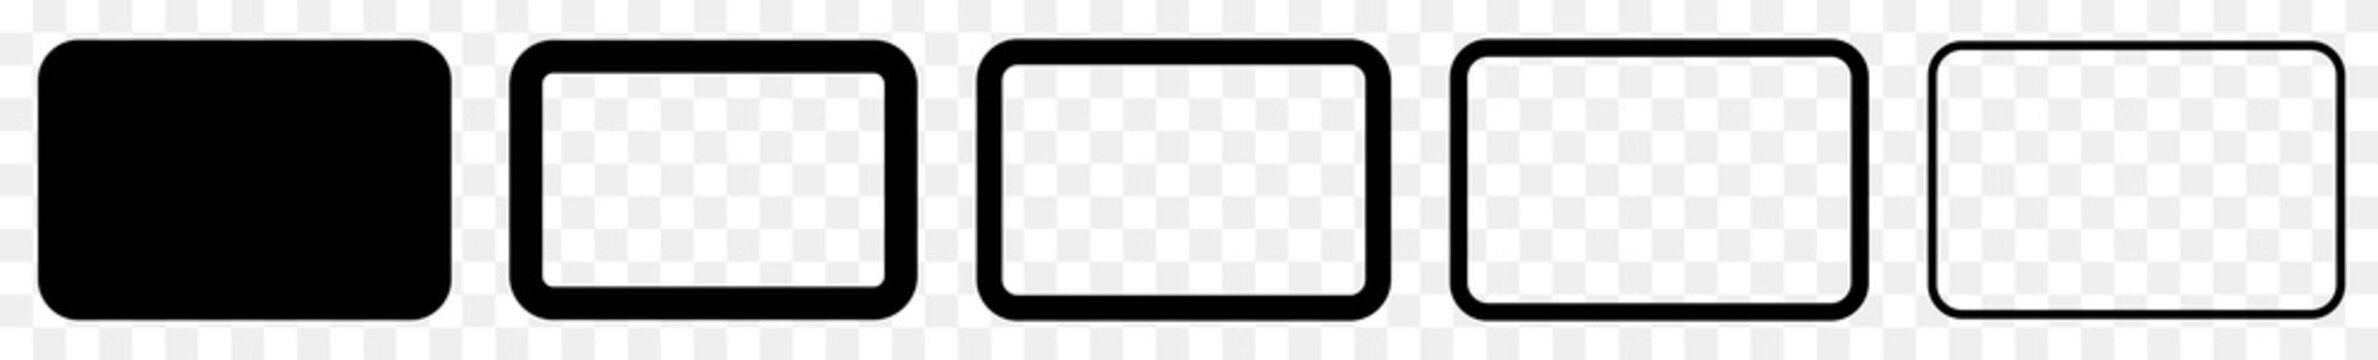 Rectangle Icon Black | Rounded Rectangles | Blank Box Symbol | Empty Frame Logo | Button Sign | Isolated Transparent | Variations